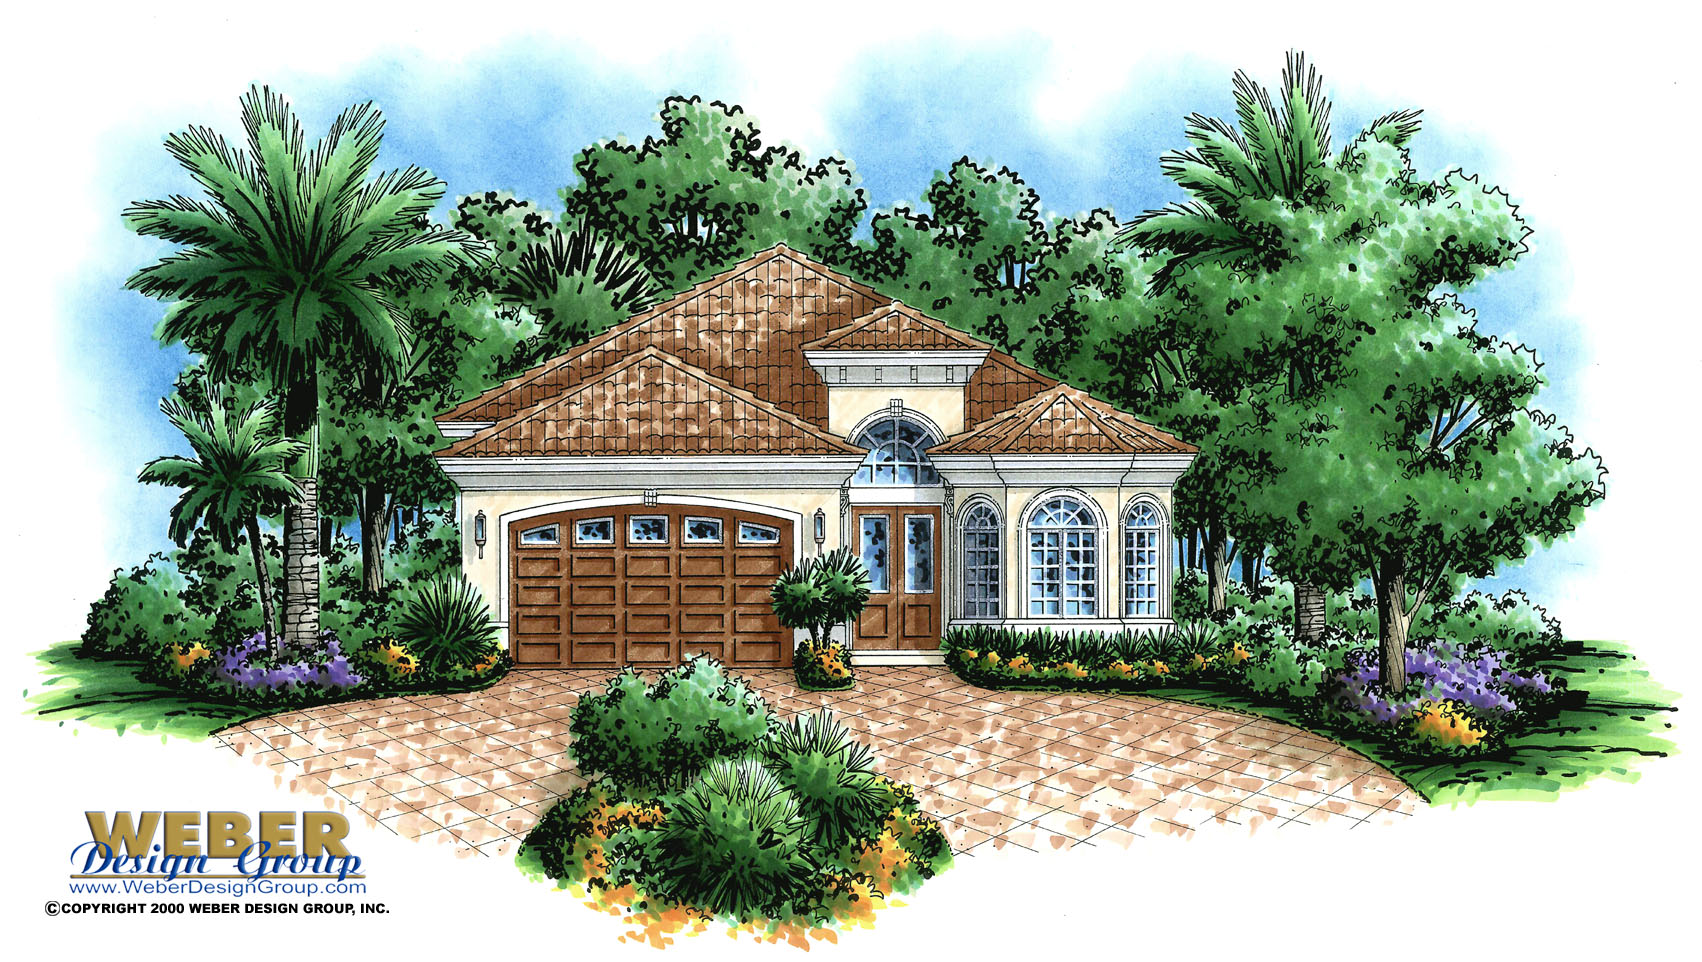 Tuscan House Plan: Mediterranean Style Home Floor Plan for Narrow Lot